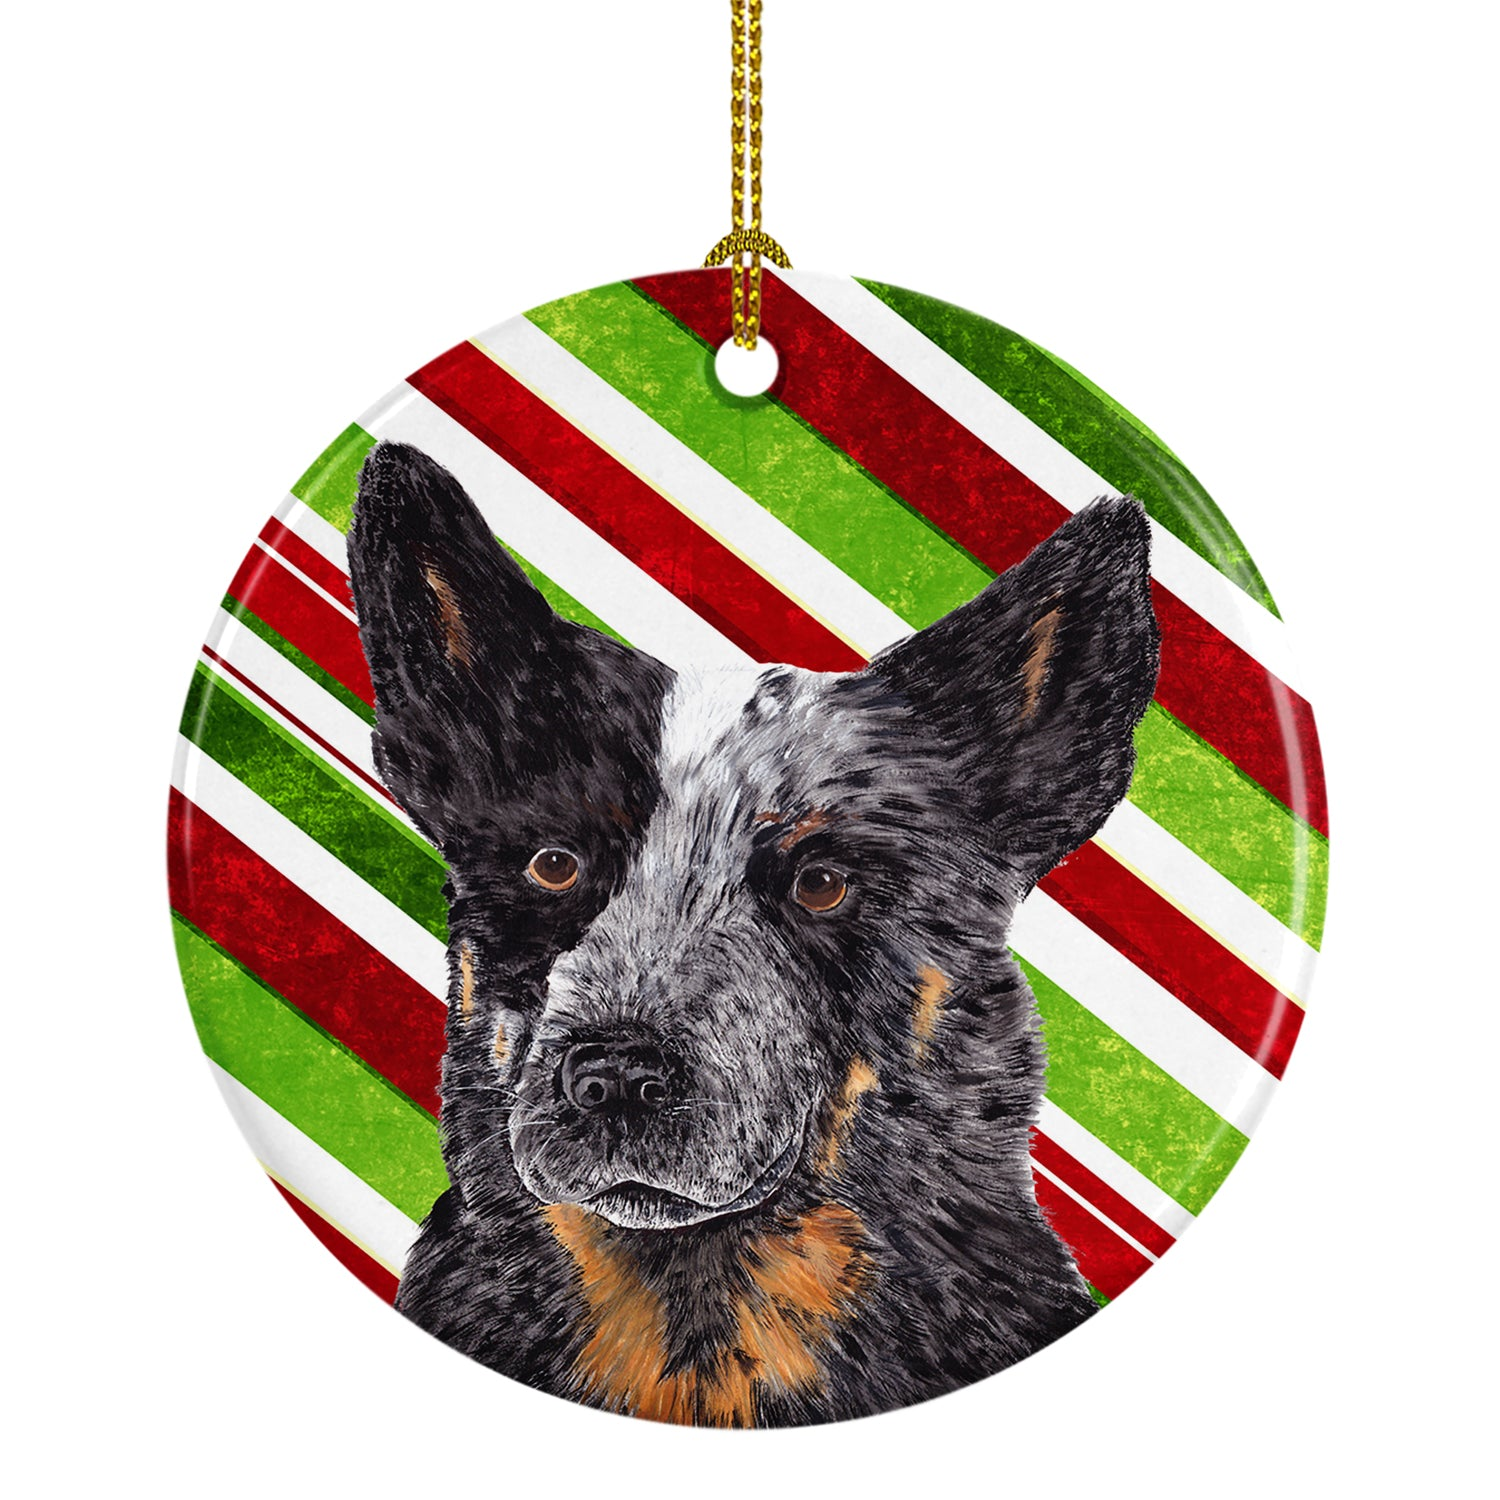 Australian Cattle Dog Candy Cane Holiday Christmas  Ceramic Ornament SC9356 by Caroline's Treasures